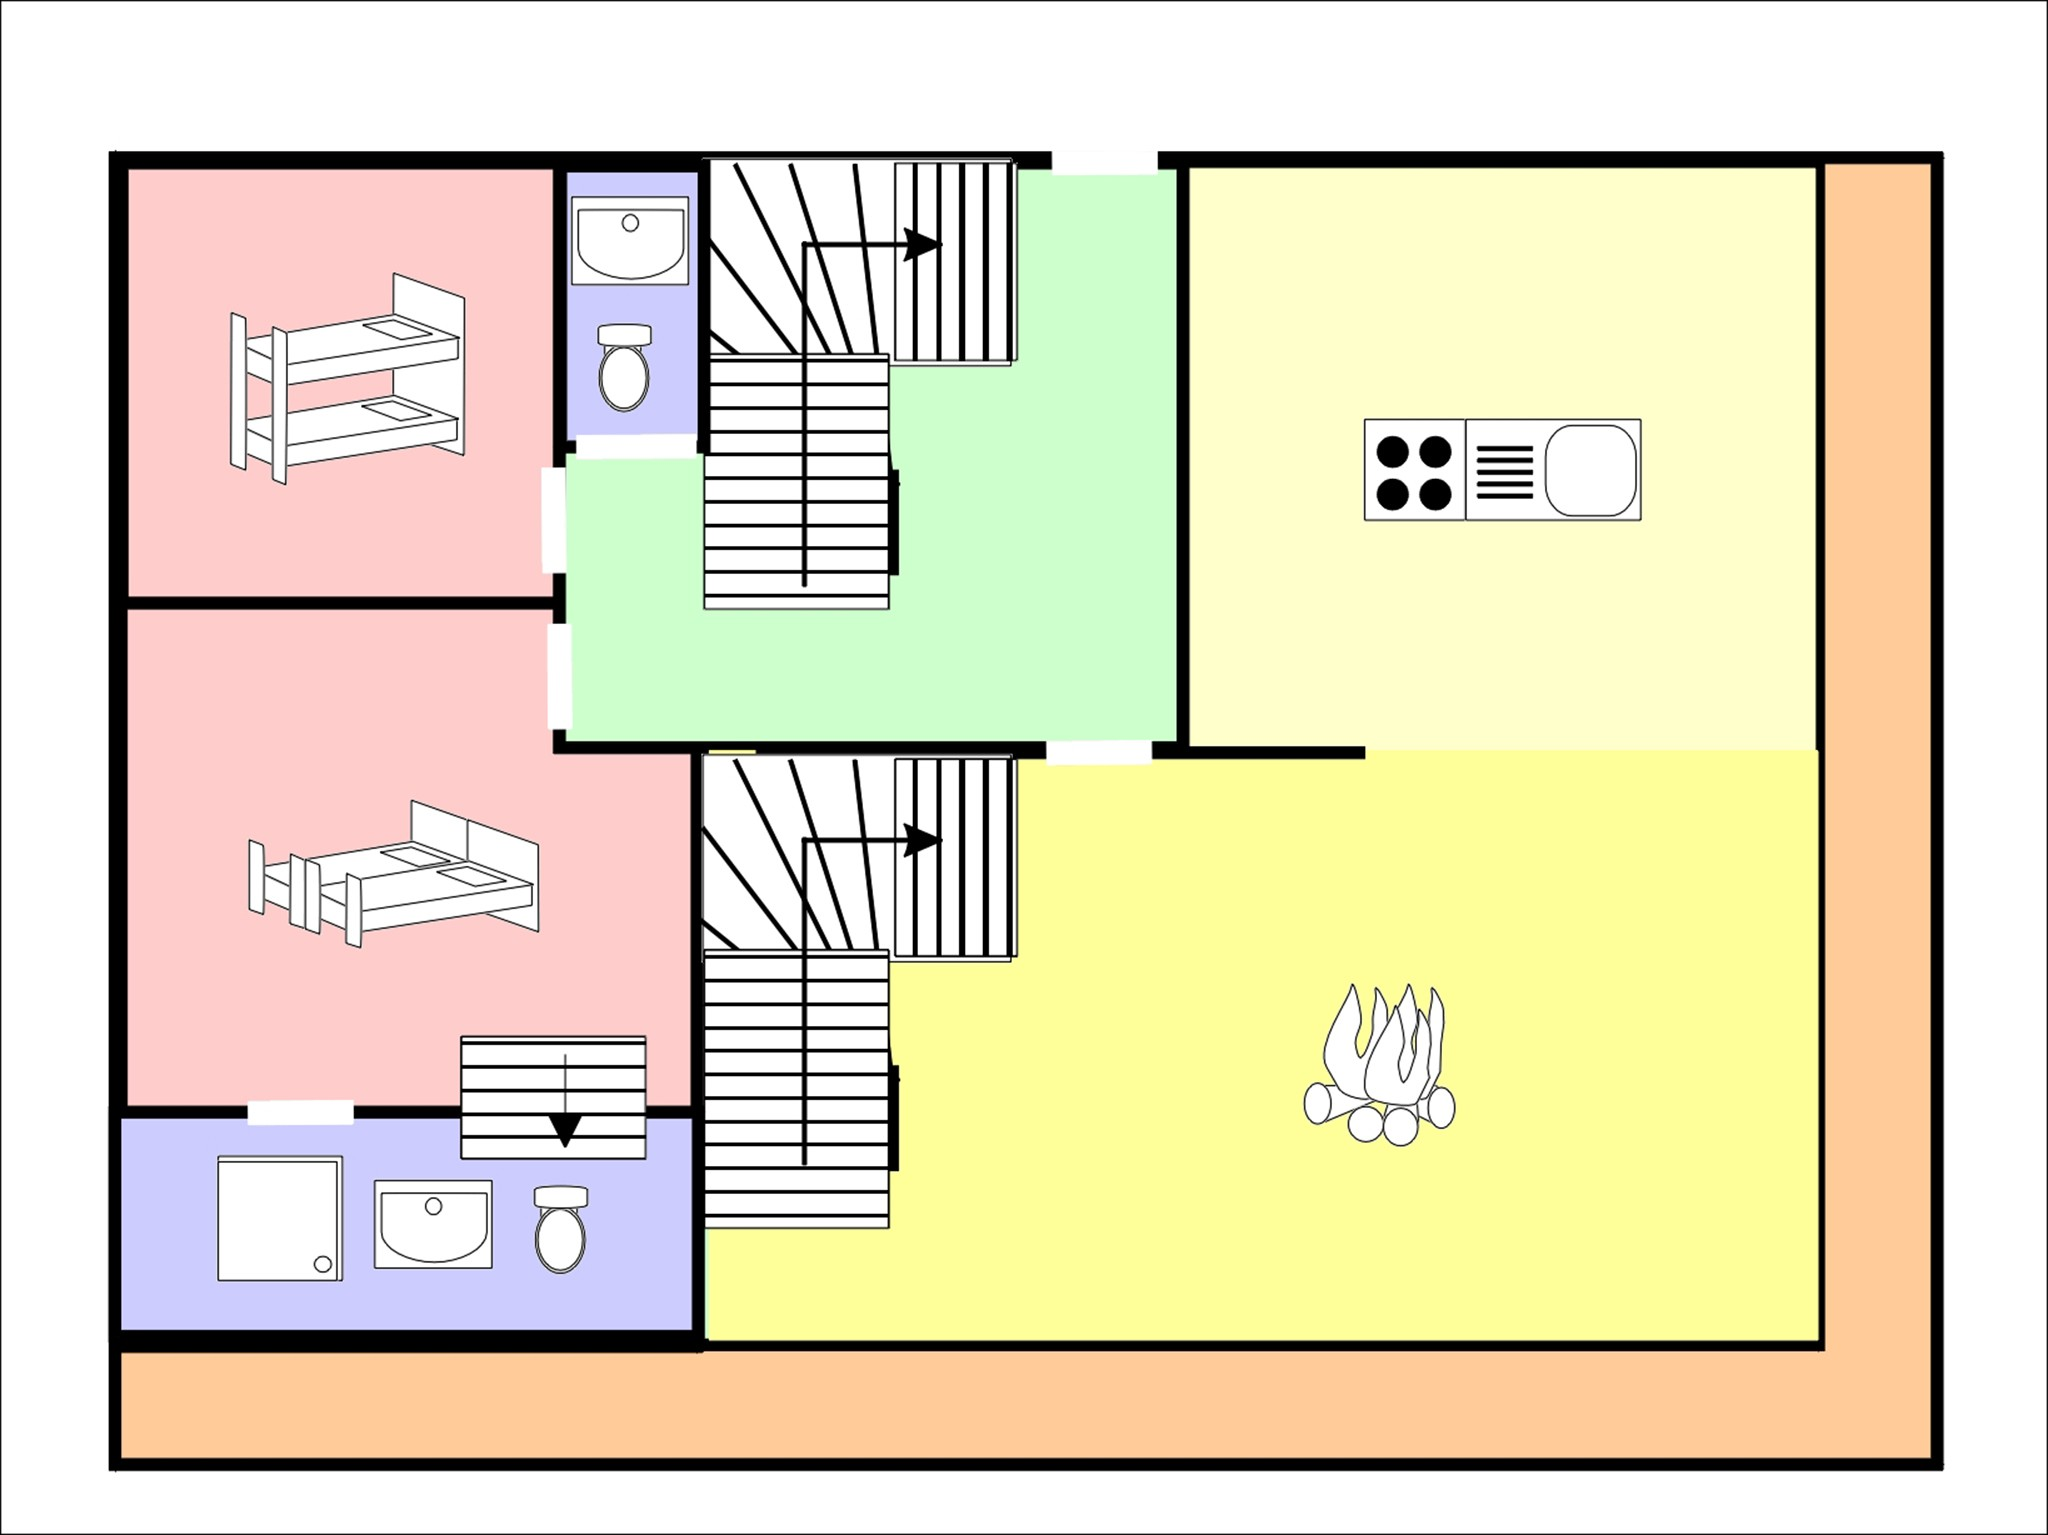 Chalet Michelle - floor plan - level 1